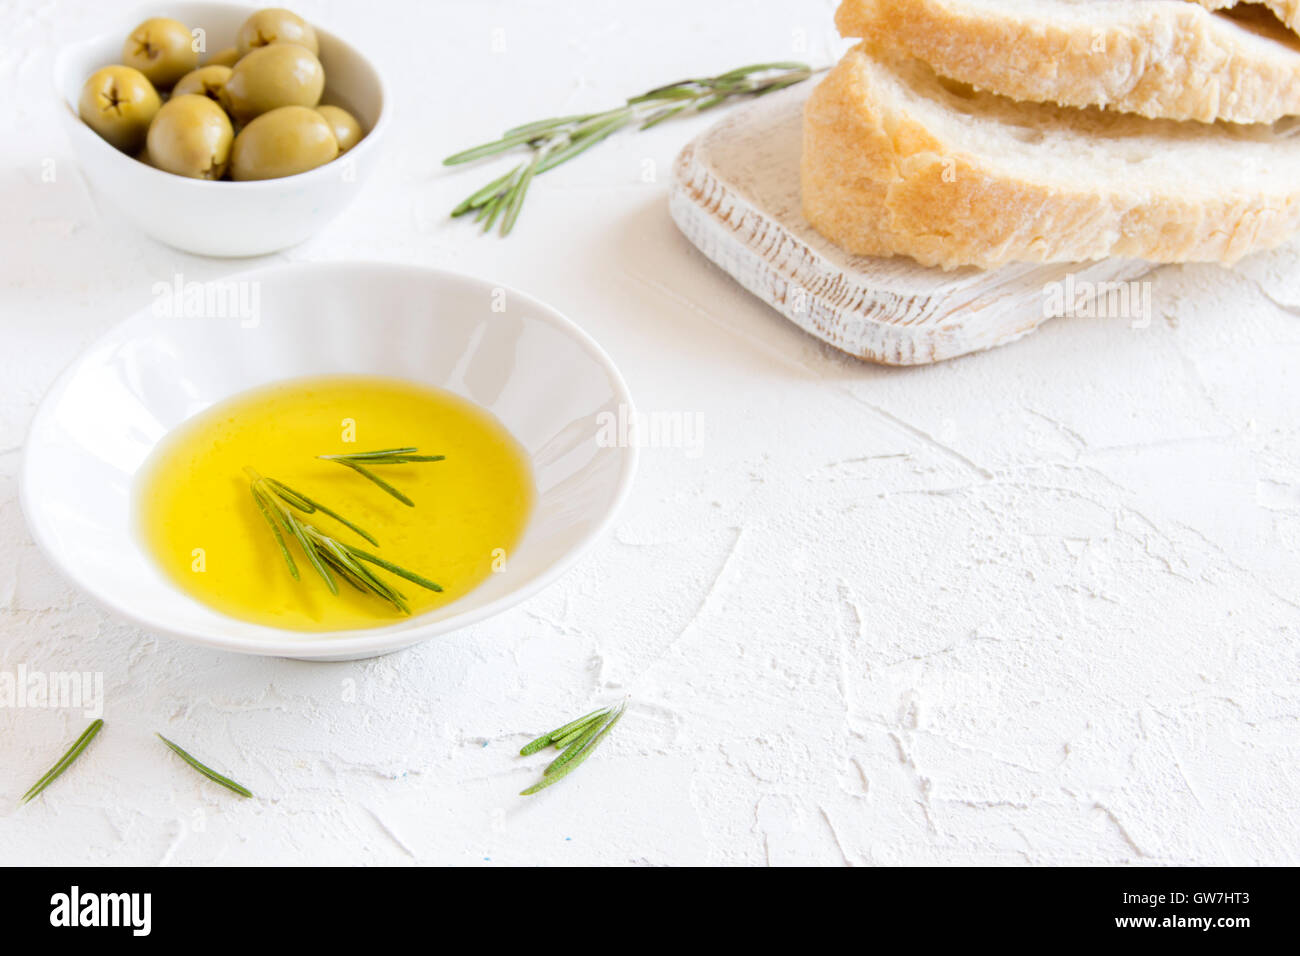 Organic olive oil with rosemary and bread over white stone background with copy space, healthy food concept - Stock Image